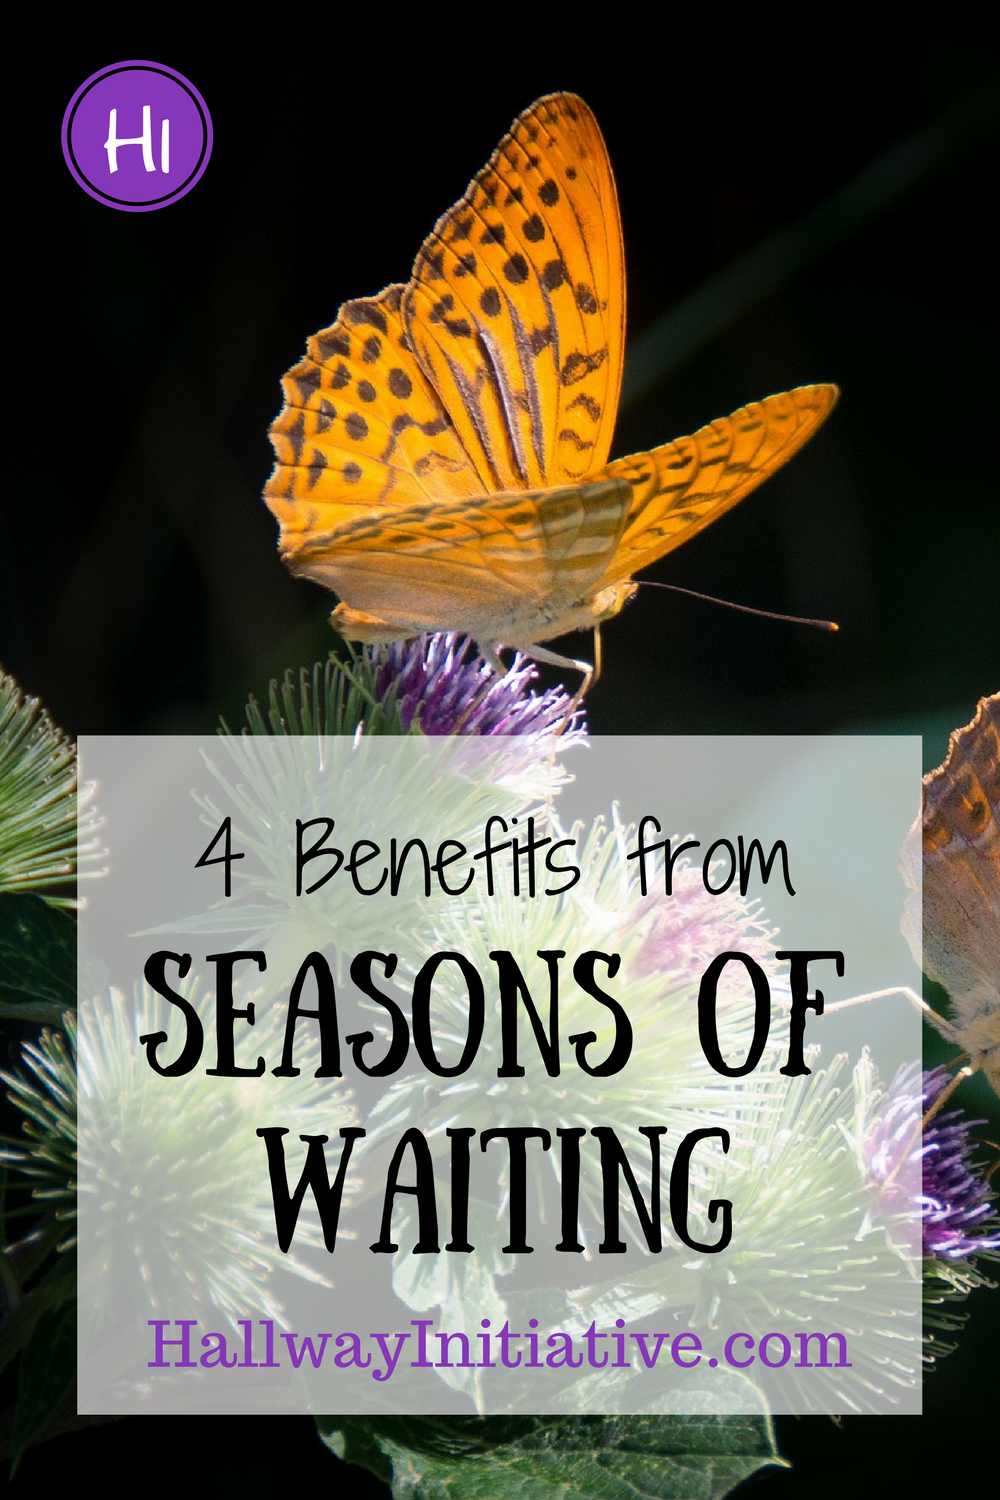 4 benefits from seasons of waiting